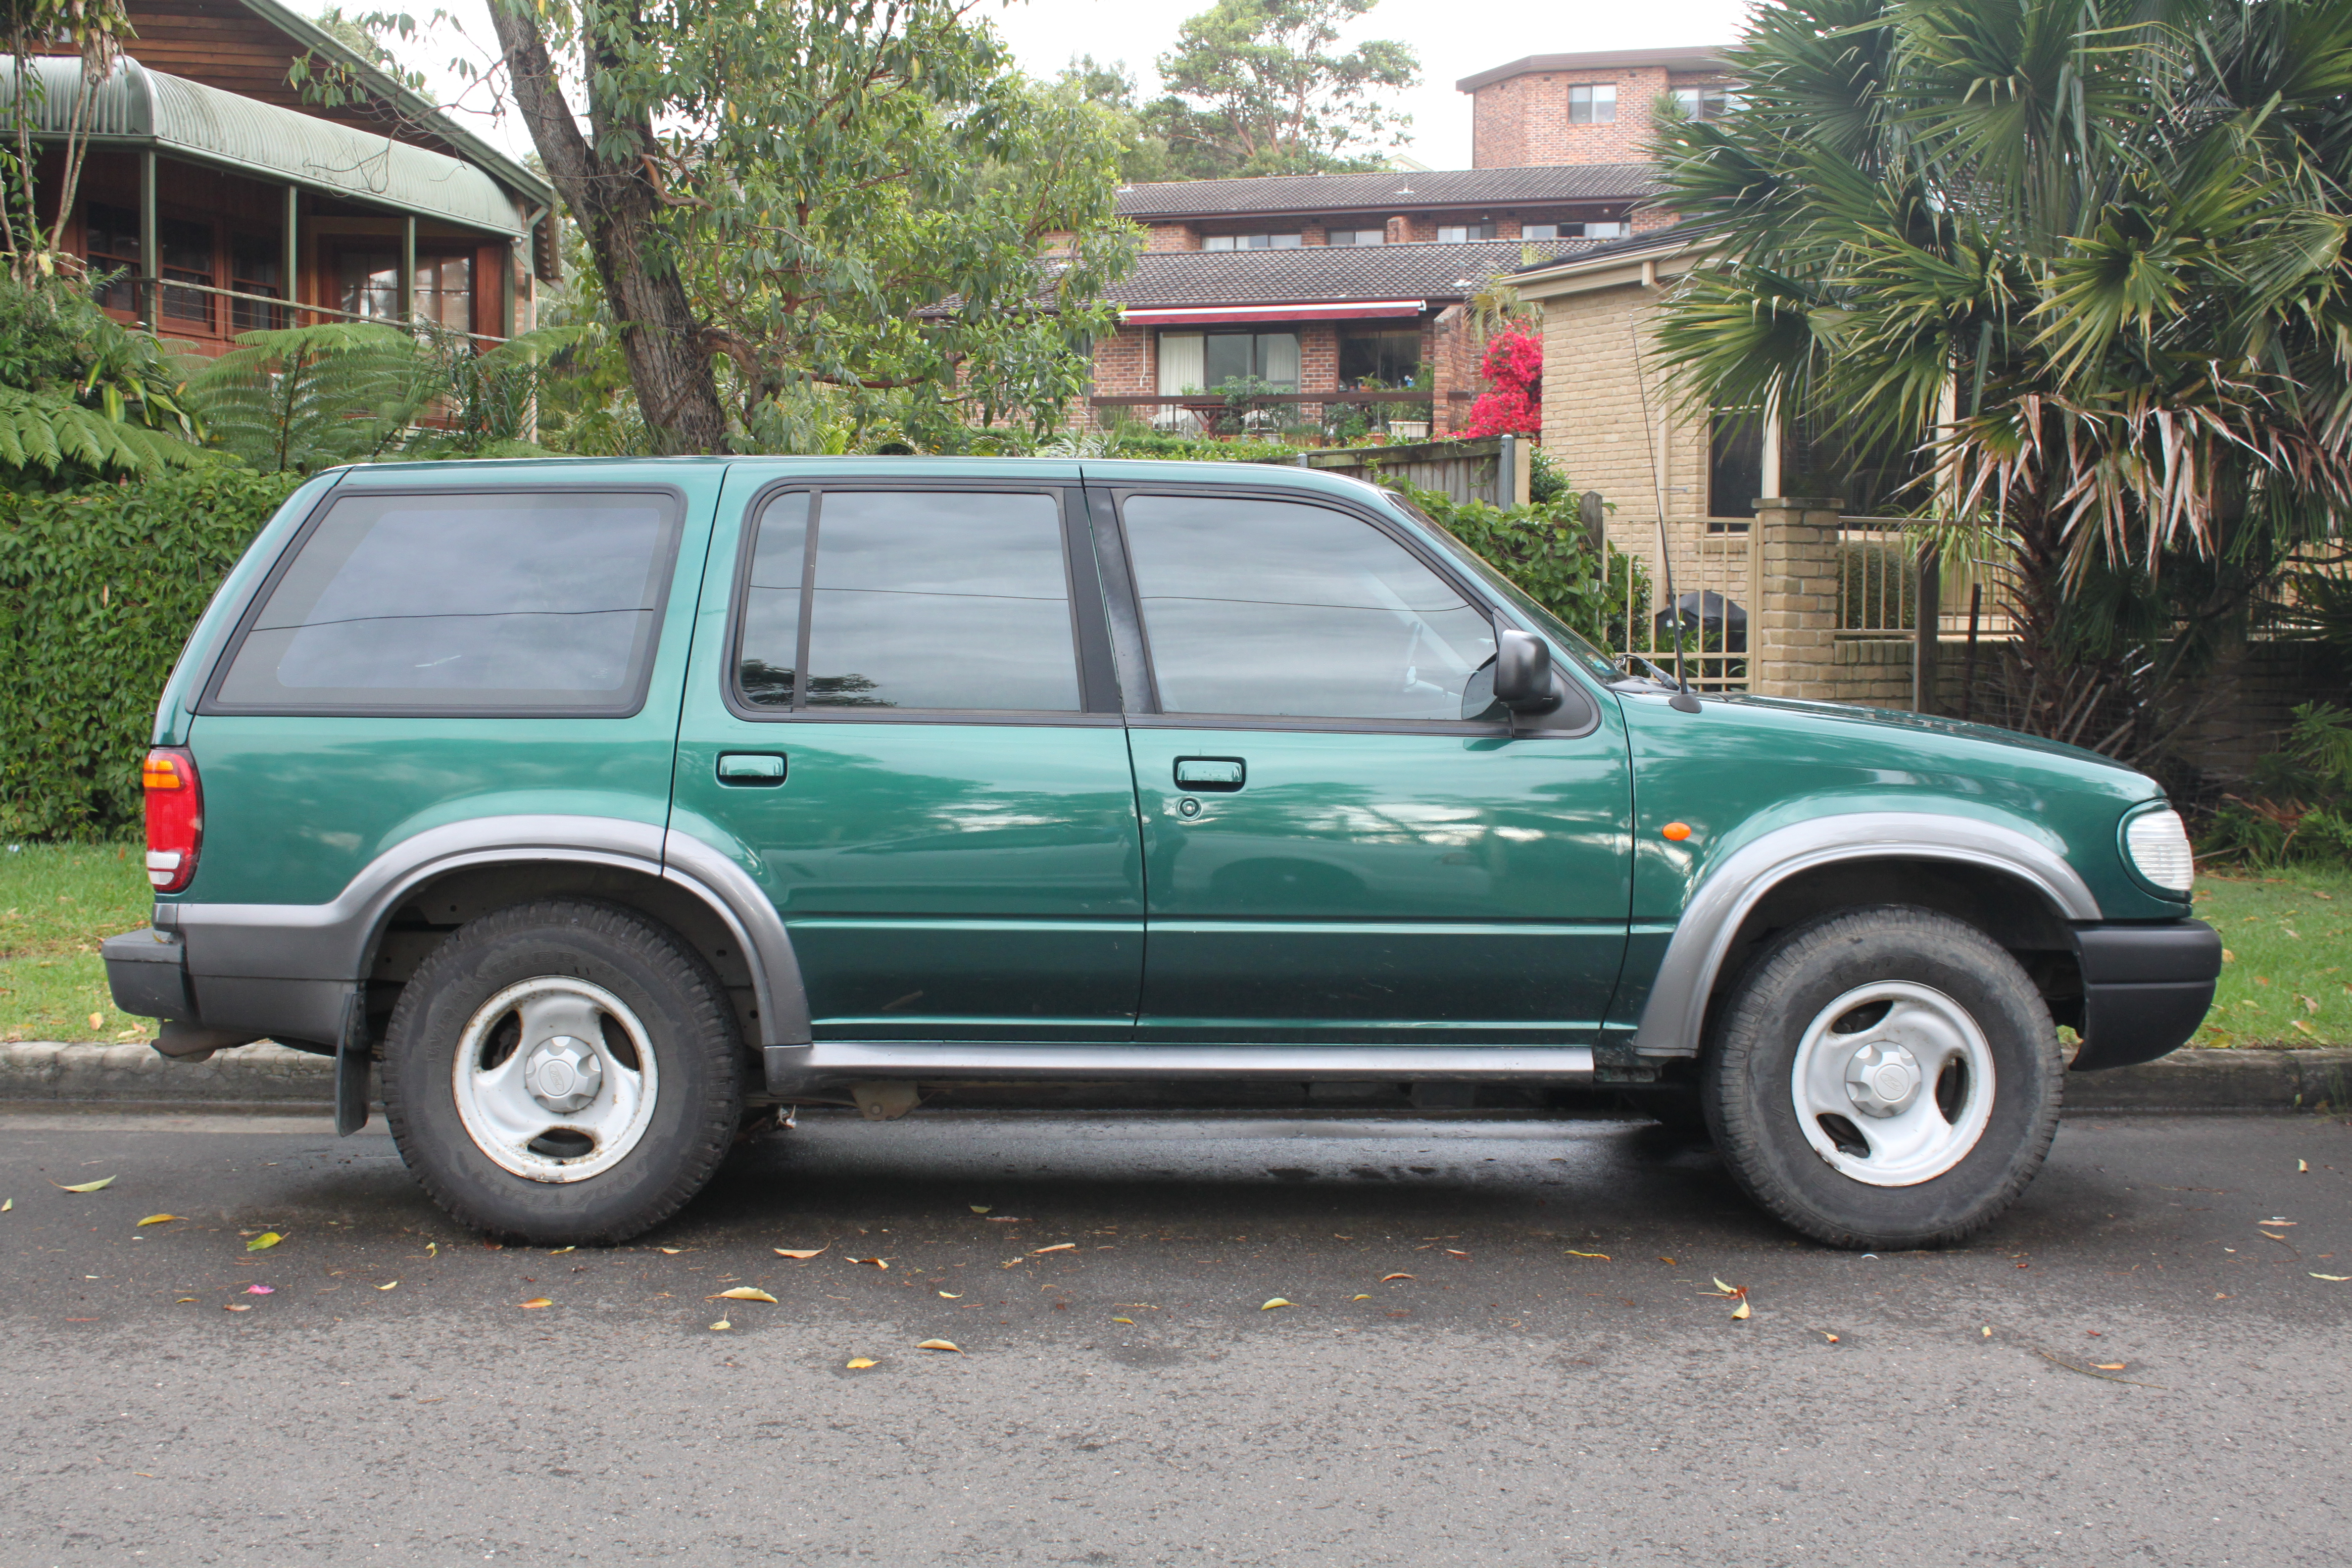 File:1999 Ford Explorer (UQ) XL 5-door wagon (22693659029).jpg ... on 1999 ford super duty f-350 srw, chevrolet tahoe, 1999 ford e-150, chevrolet suburban, ford focus, 1999 ford ranger, 1999 ford windstar, ford excursion, ford edge, 1999 ford taurus, ford bronco, cadillac escalade, 1999 ford f150 heritage, ford explorer sport trac, 1999 ford f450 pickup, ford escape, dodge durango, jeep grand cherokee, lincoln navigator, 1999 ford f350 2wd, ford mustang, 1999 ford f-150, 1999 ford mustang, mercury mountaineer, 1999 ford f350sd, ford ranger, 1999 ford expedition, 1999 ford f150 stx, 1999 ford e-250, ford fusion, 1999 ford escape, 1999 ford contour, ford expedition, ford taurus, 1999 ford f350 super, 1999 ford crown vic, 1999 ford e-series, 1999 ford van, dodge ram, ford flex,